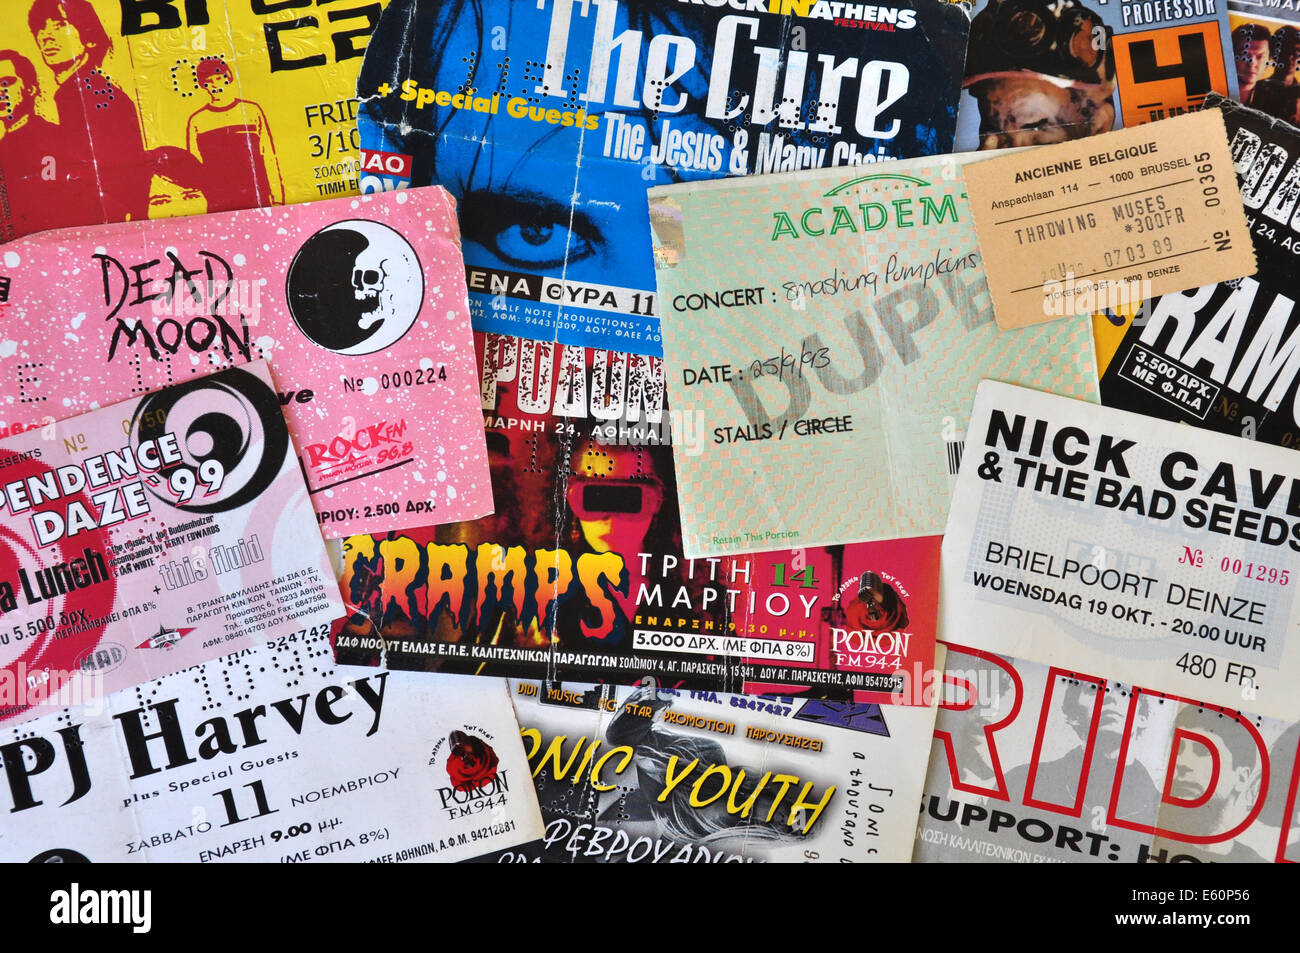 Vintage live concert ticket stubs alternative indie and punk rock music memorabilia from the 1980s and 1990s. - Stock Image